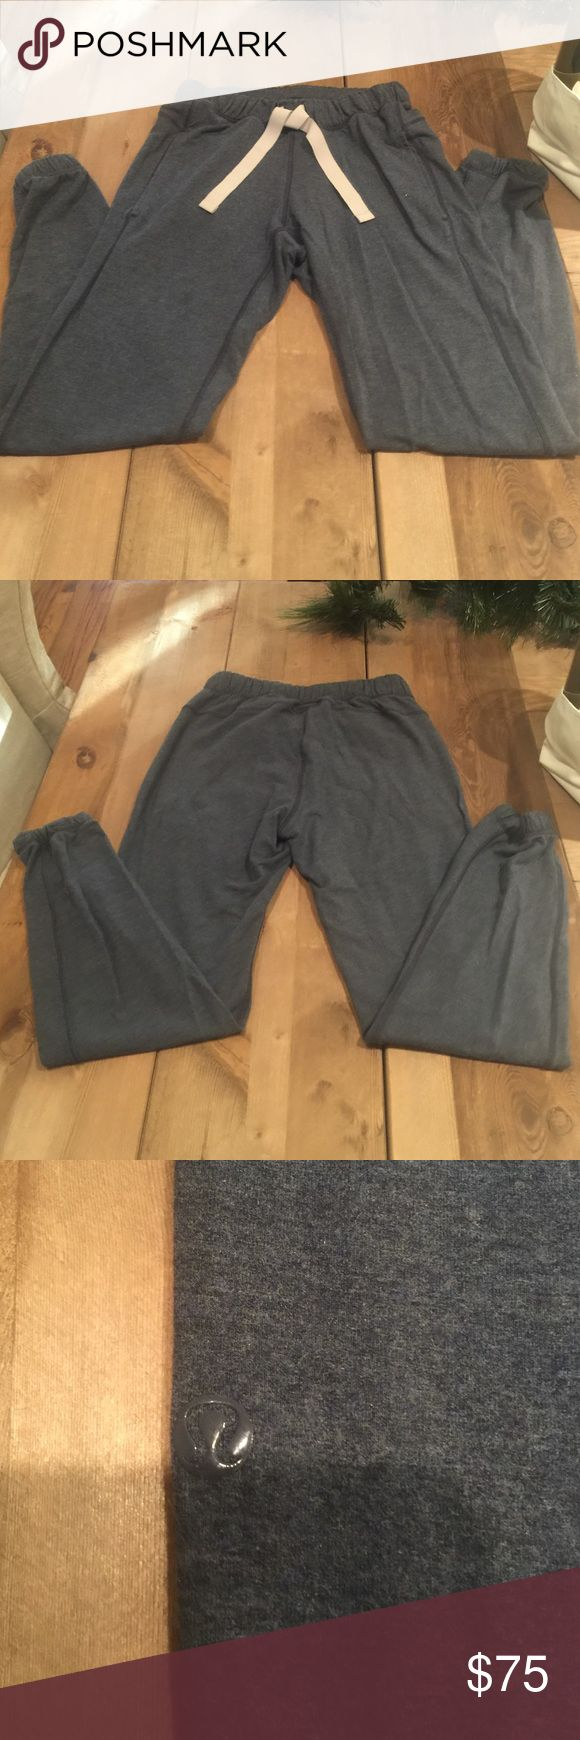 ADORABLE AND RARE Lululemon Lounge Pants size 4!! Lululemon comfy pants great for to and from the gym or yoga or just relaxing at home. I wore these once. Blueish grey color with beige waist tie. Elastic waistband and at ankles. lululemon athletica Pants Track Pants & Joggers